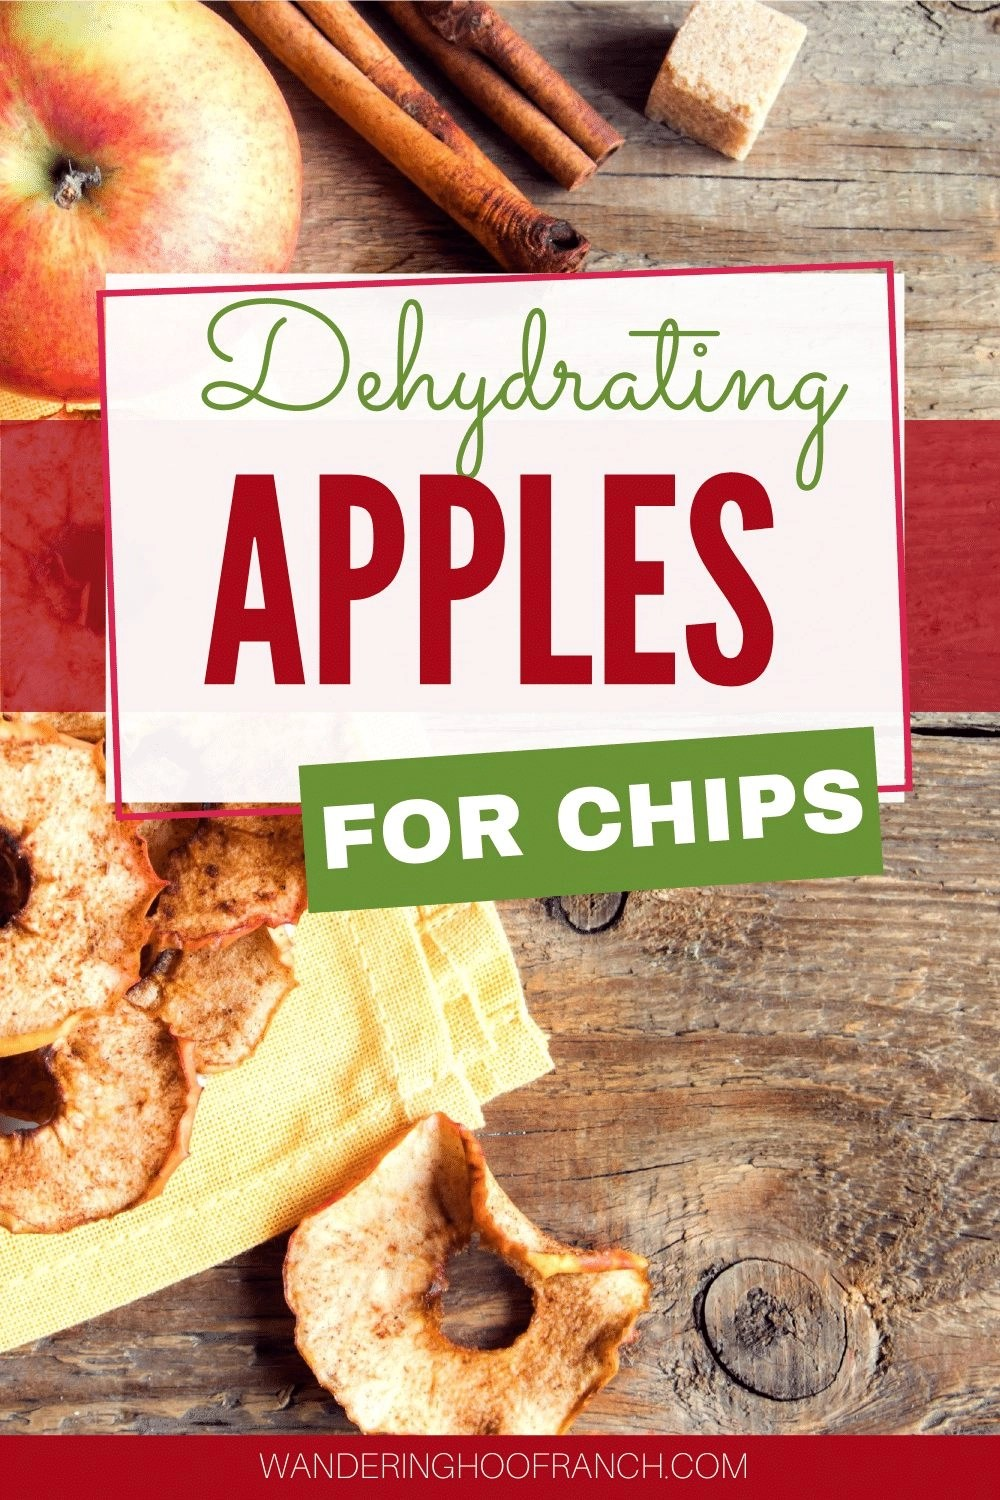 dehydrating apples for chips